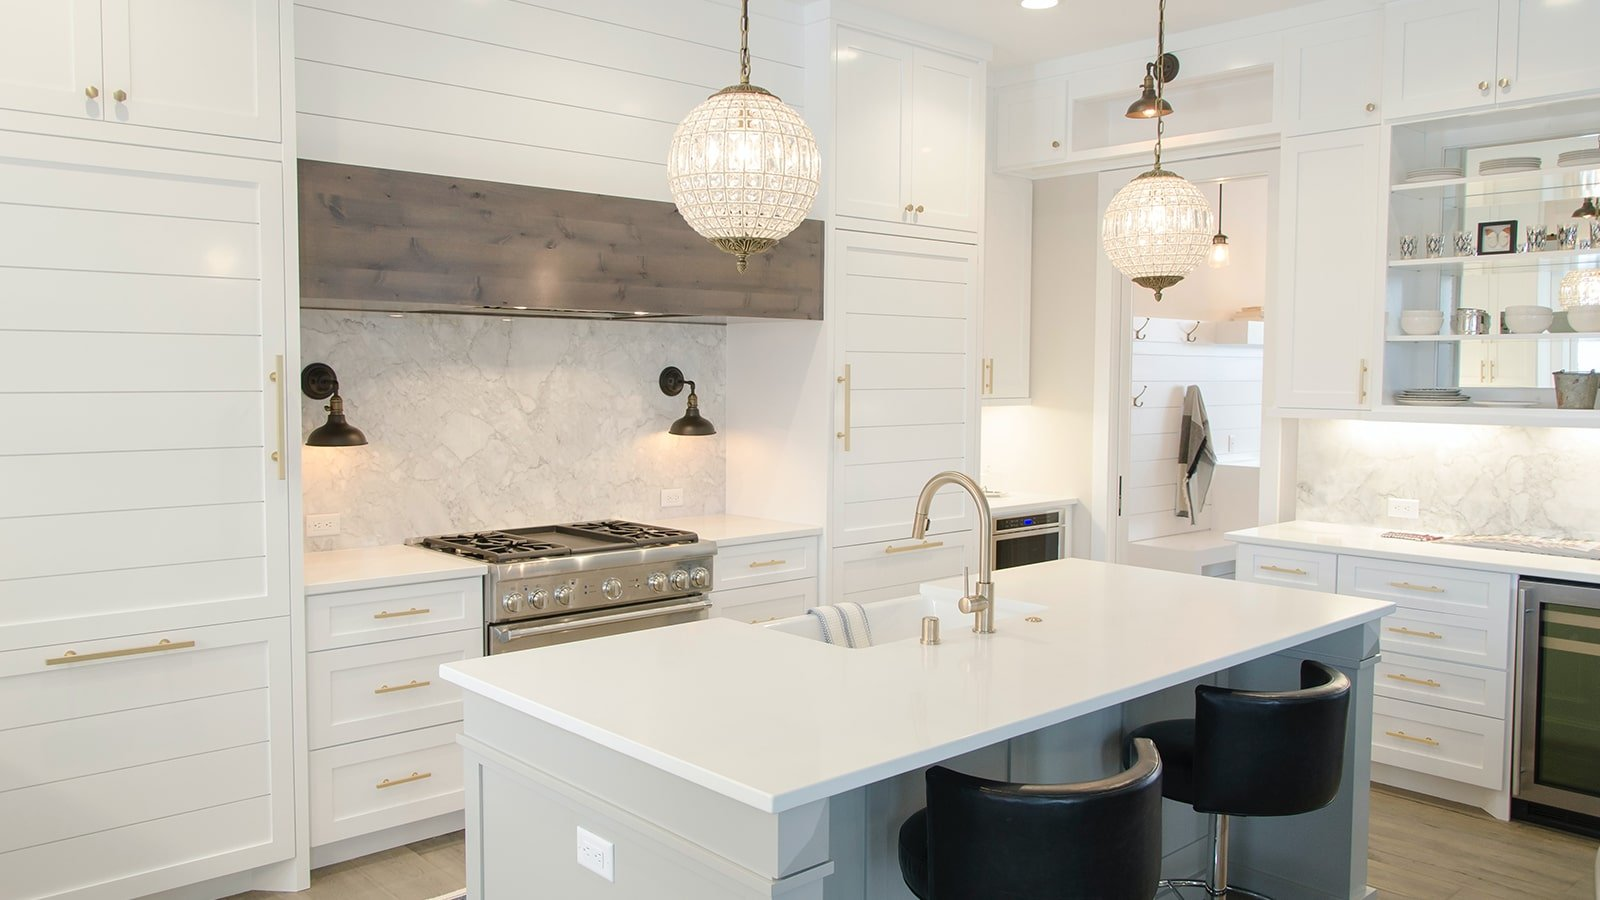 Modern kitchen with pendant lighting